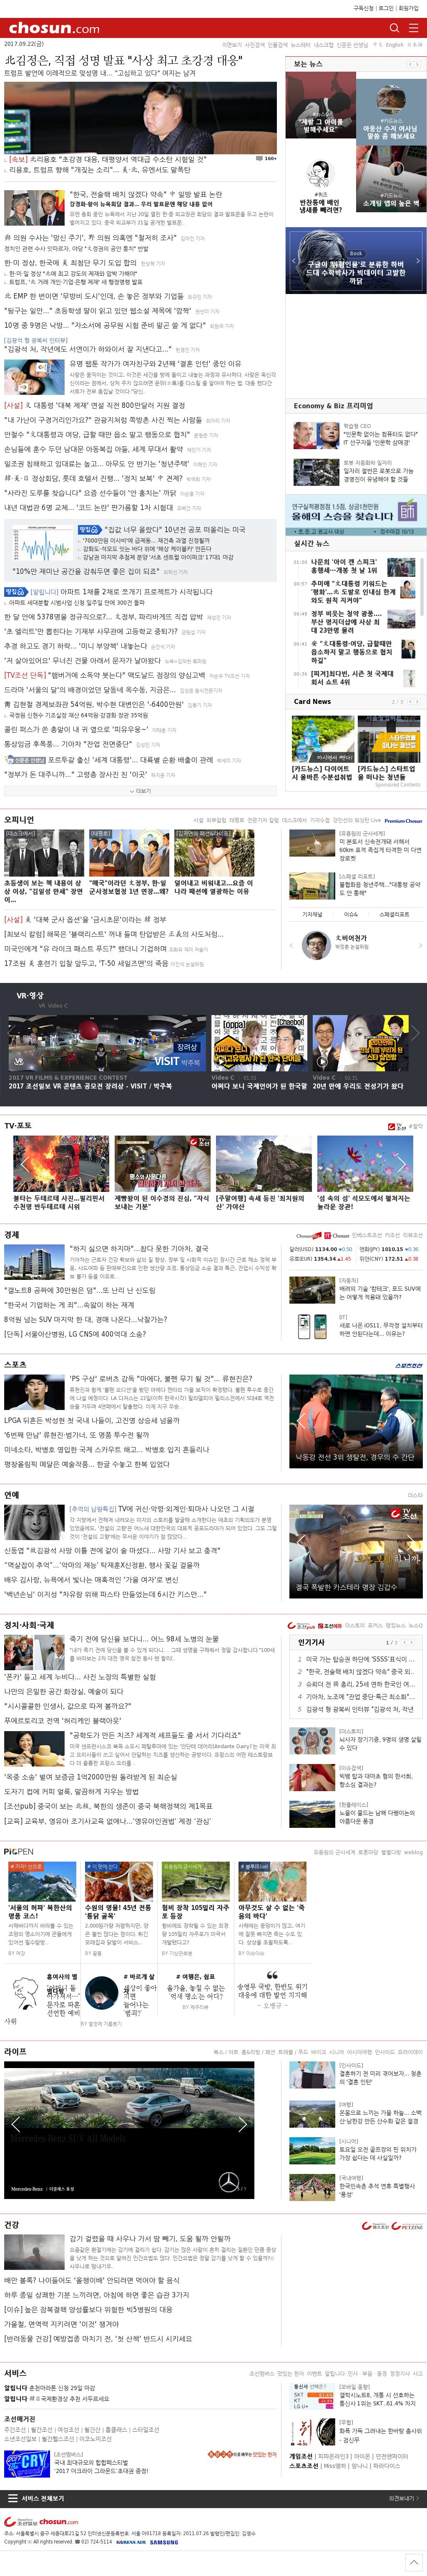 chosun.com at Friday Sept. 22, 2017, 1:01 a.m. UTC